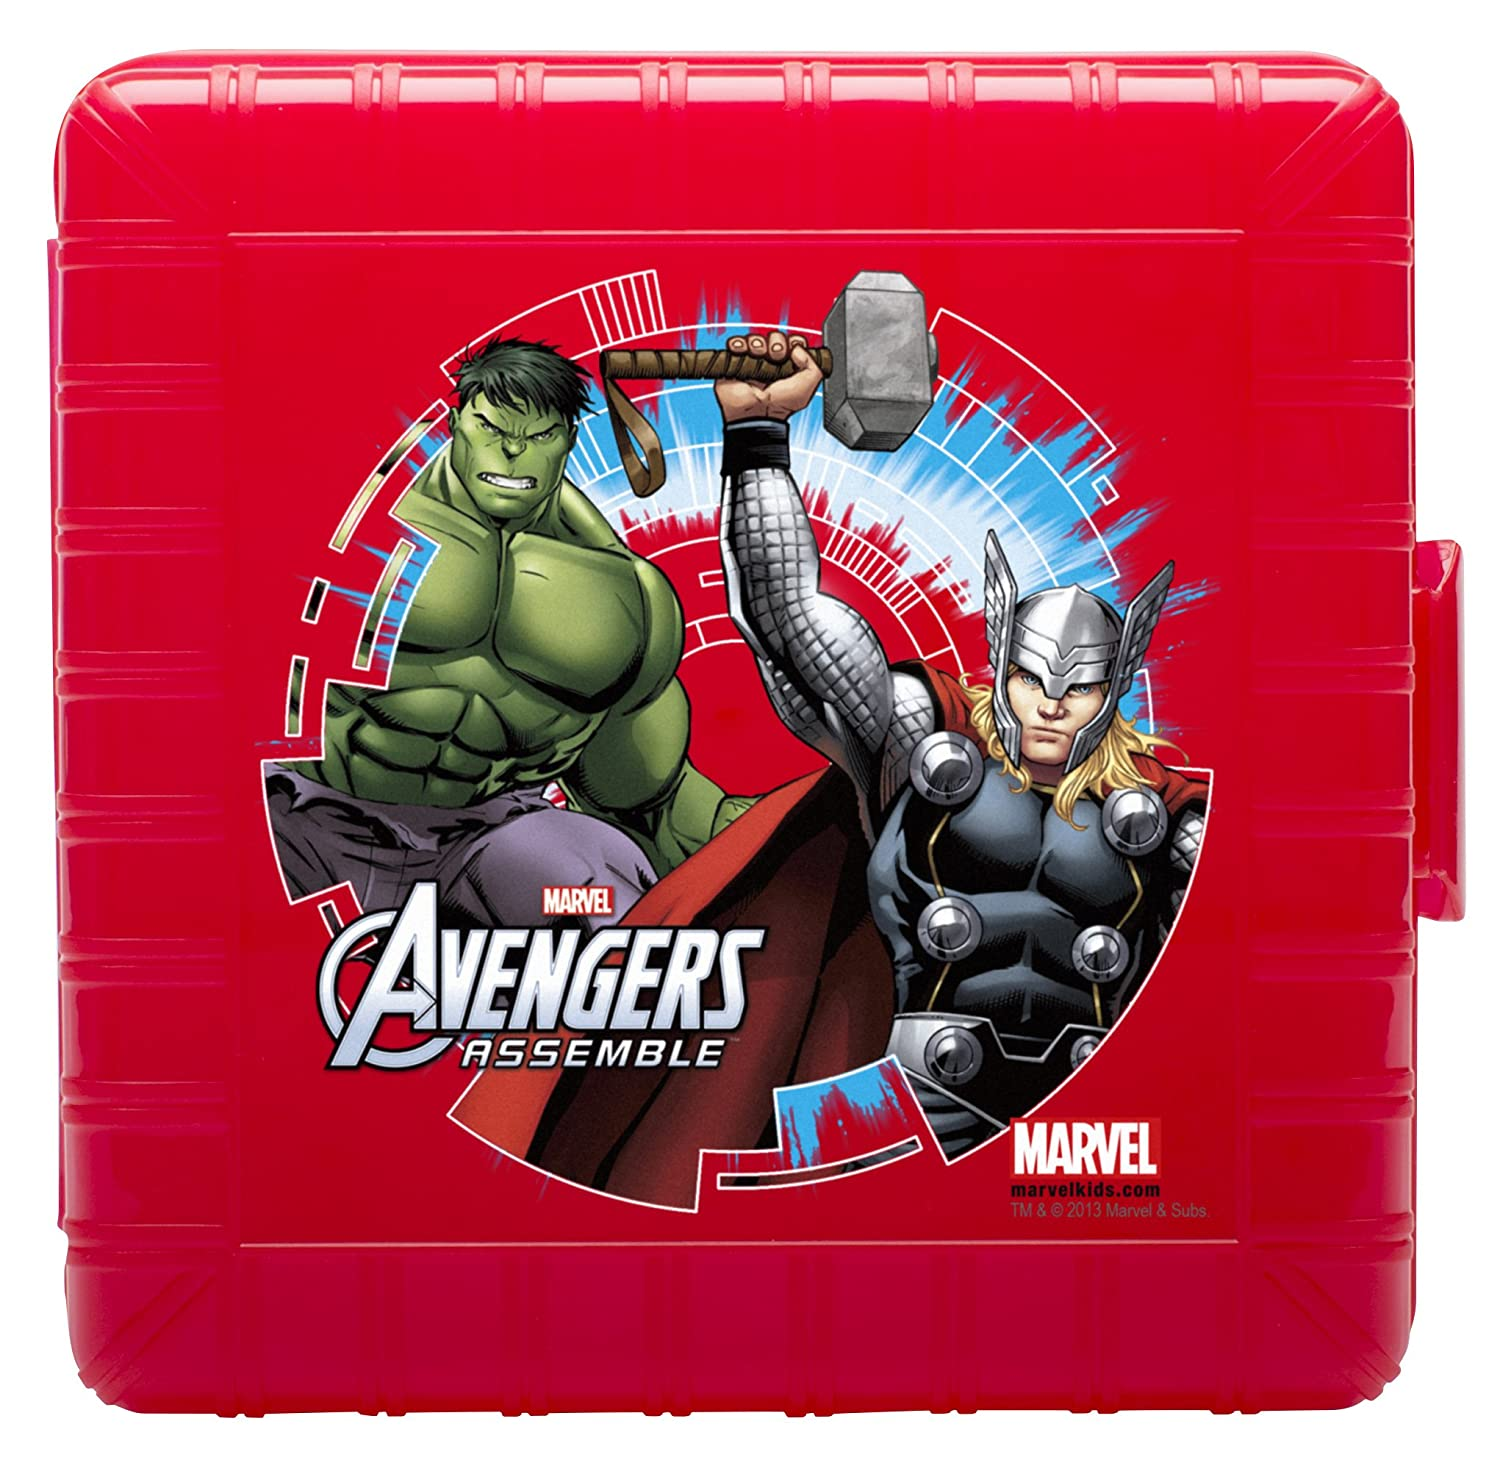 Zak! Designs GoPak Lunch Box Divided Food Storage Container featuring Avengers Graphics, Break-resistant and BPA-free Plastic Zak Designs AVNG-N451